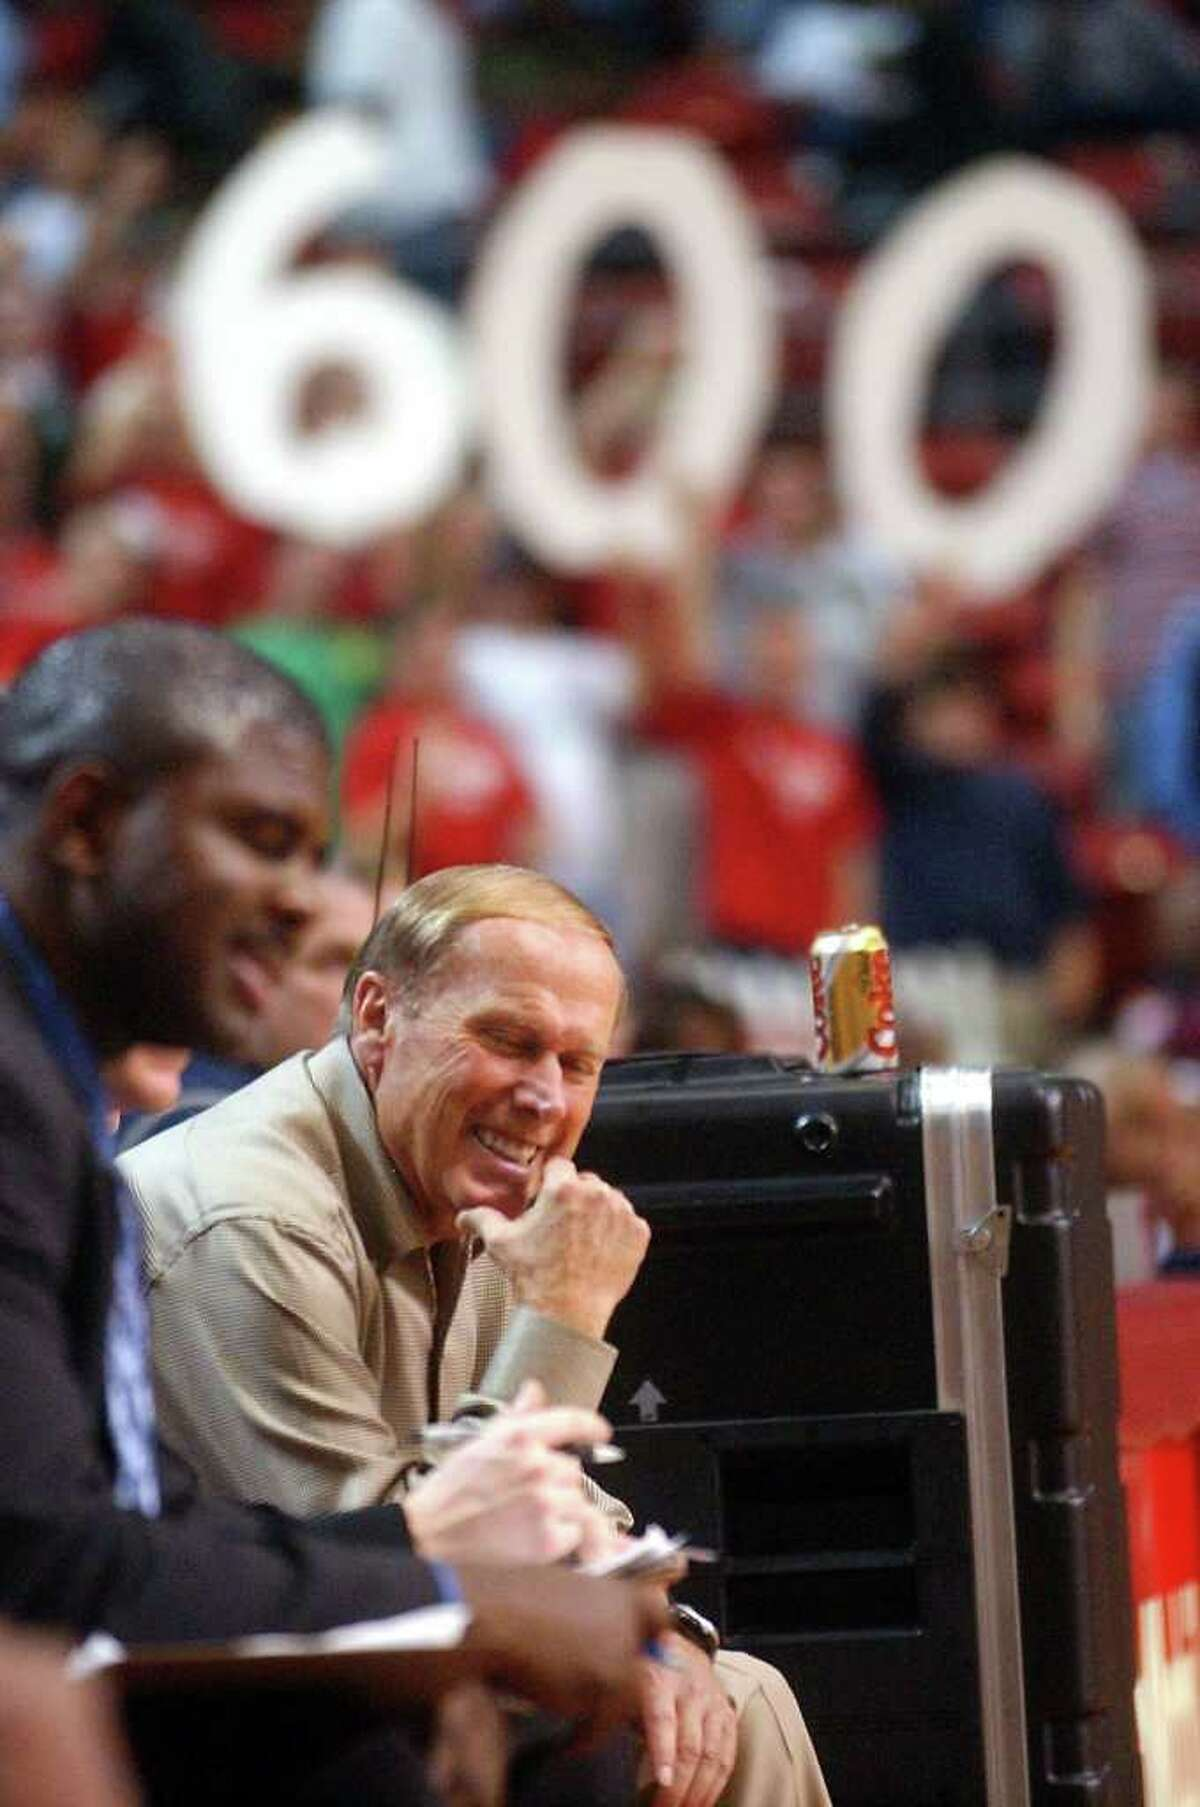 Lamar coach Billy Tubbs is all smiles as he notched his 600th win with a victory over Texas Southern 79-67at Lamars Montagne Center. Eckert/photo